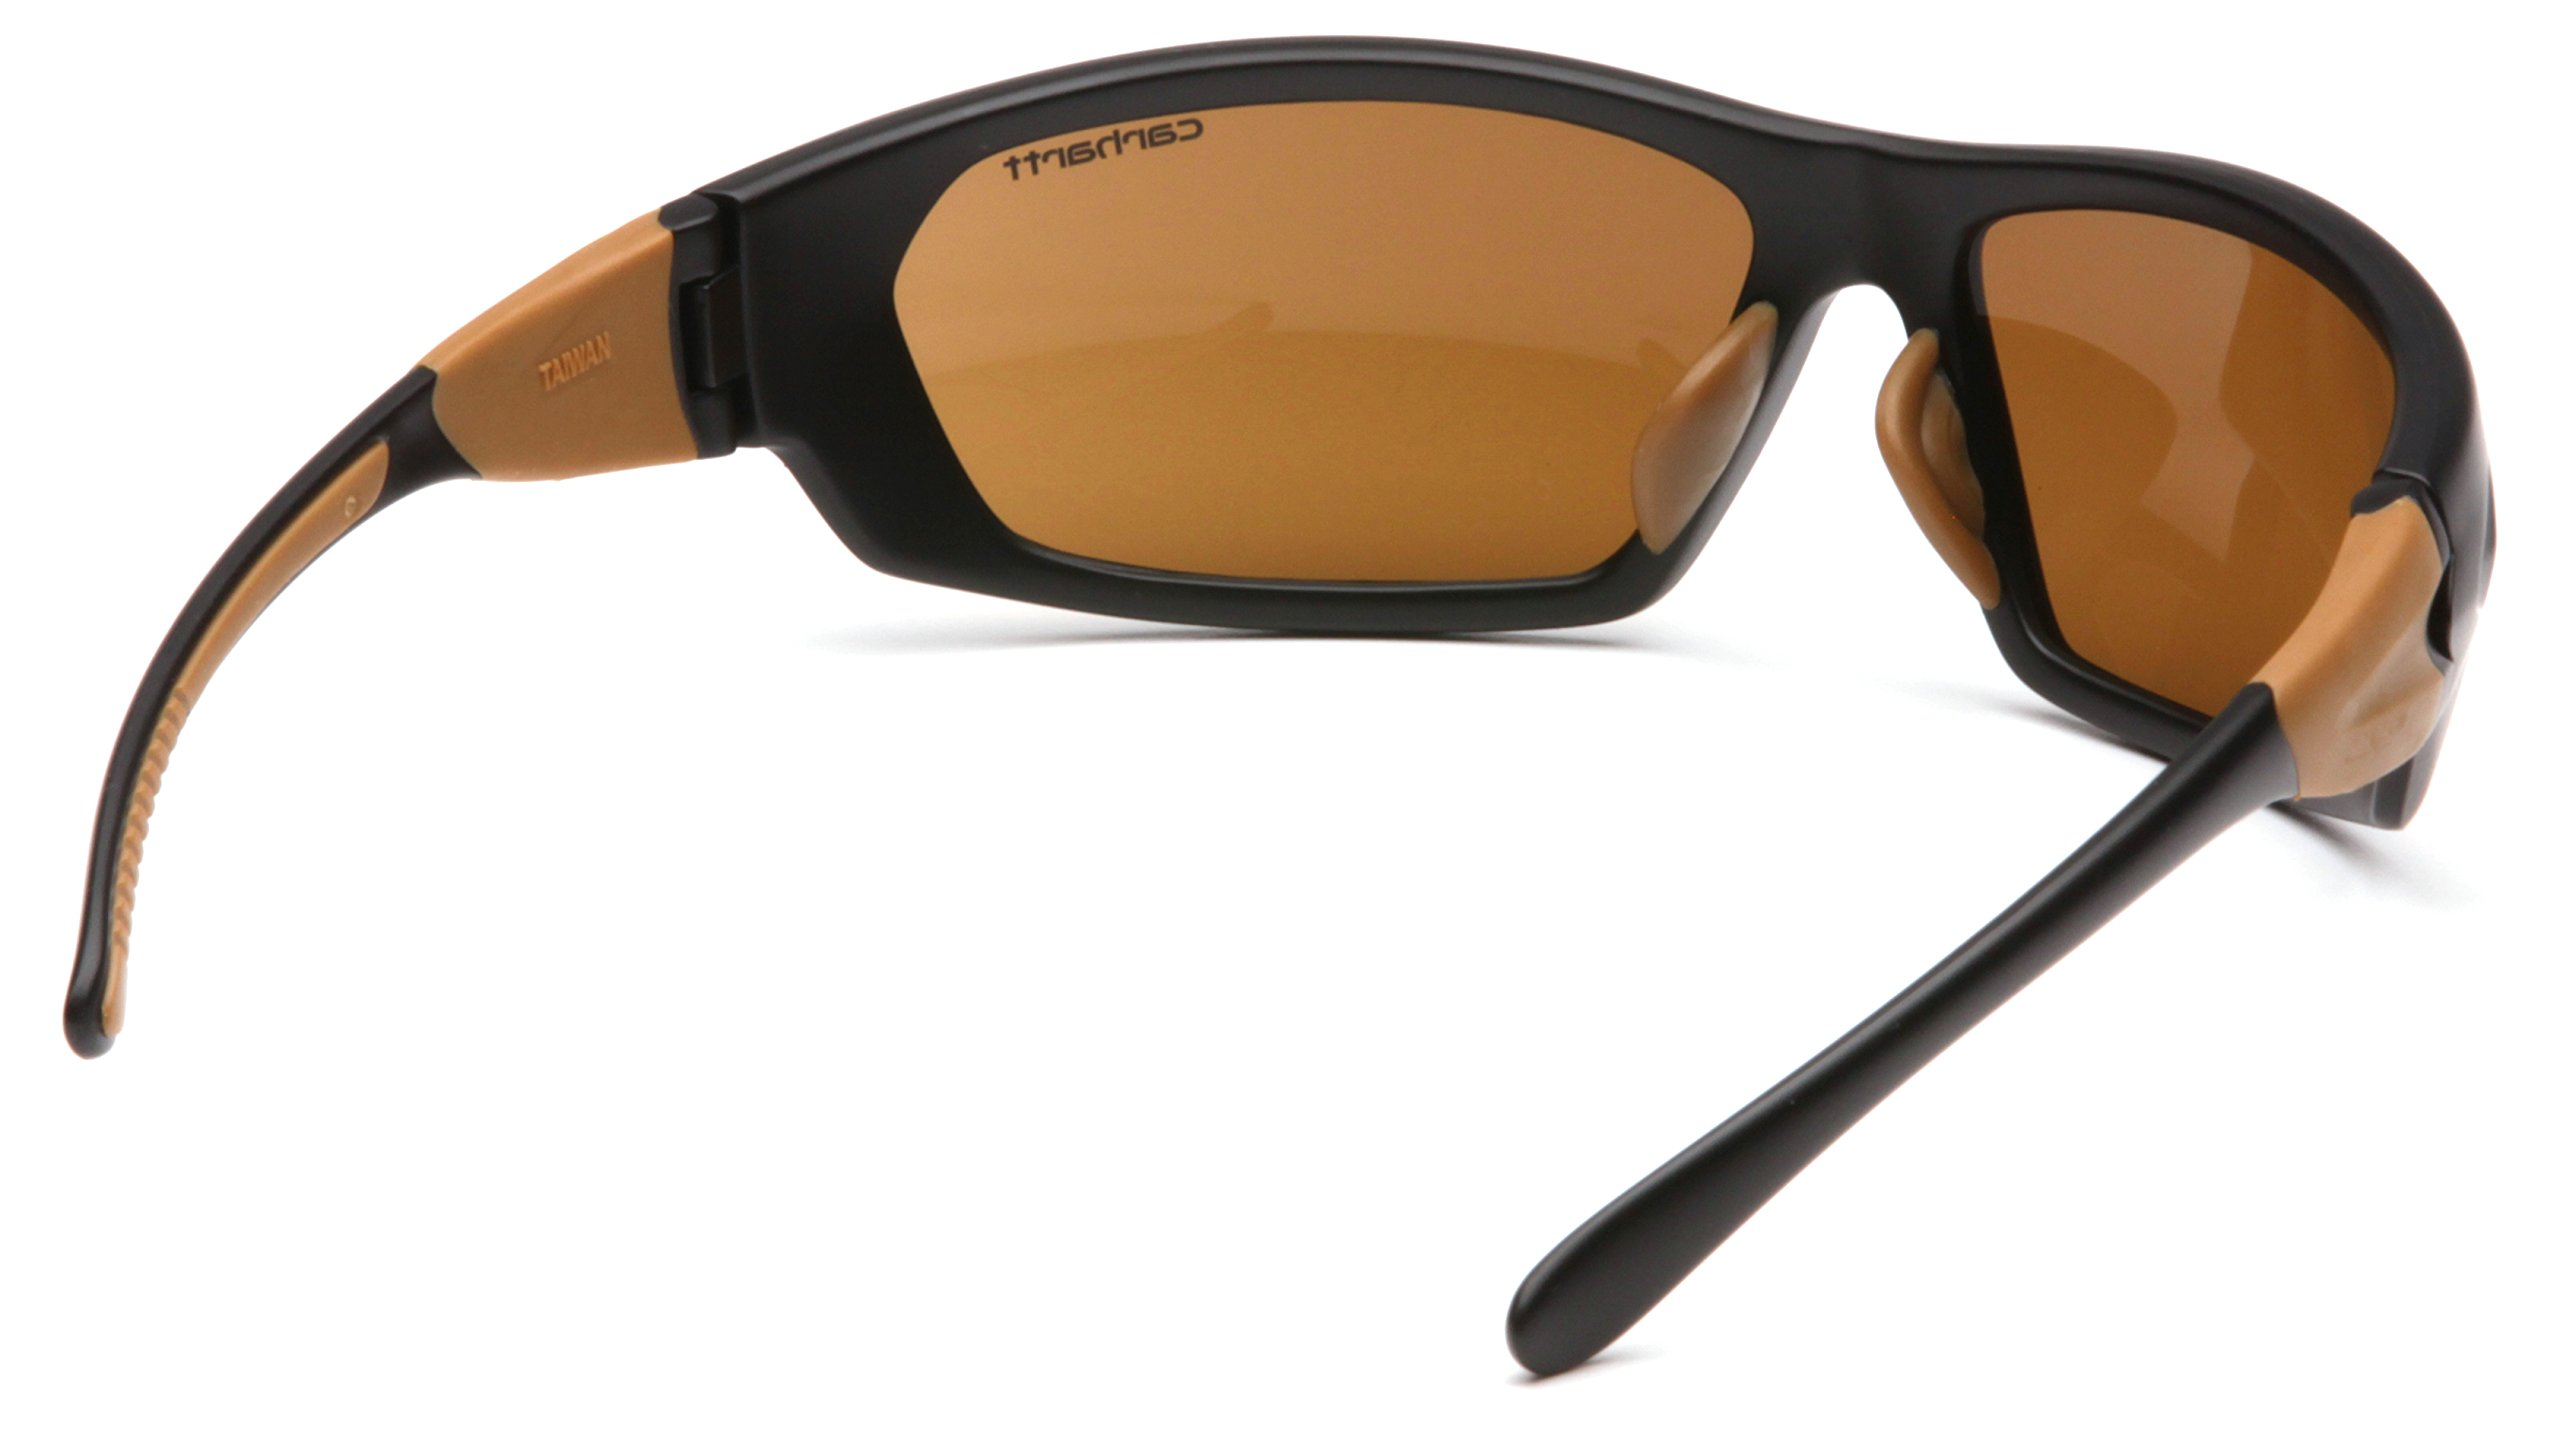 Carhartt Carbondale Safety Sunglasses with Sandstone Bronze Lens by Carhartt (Image #4)